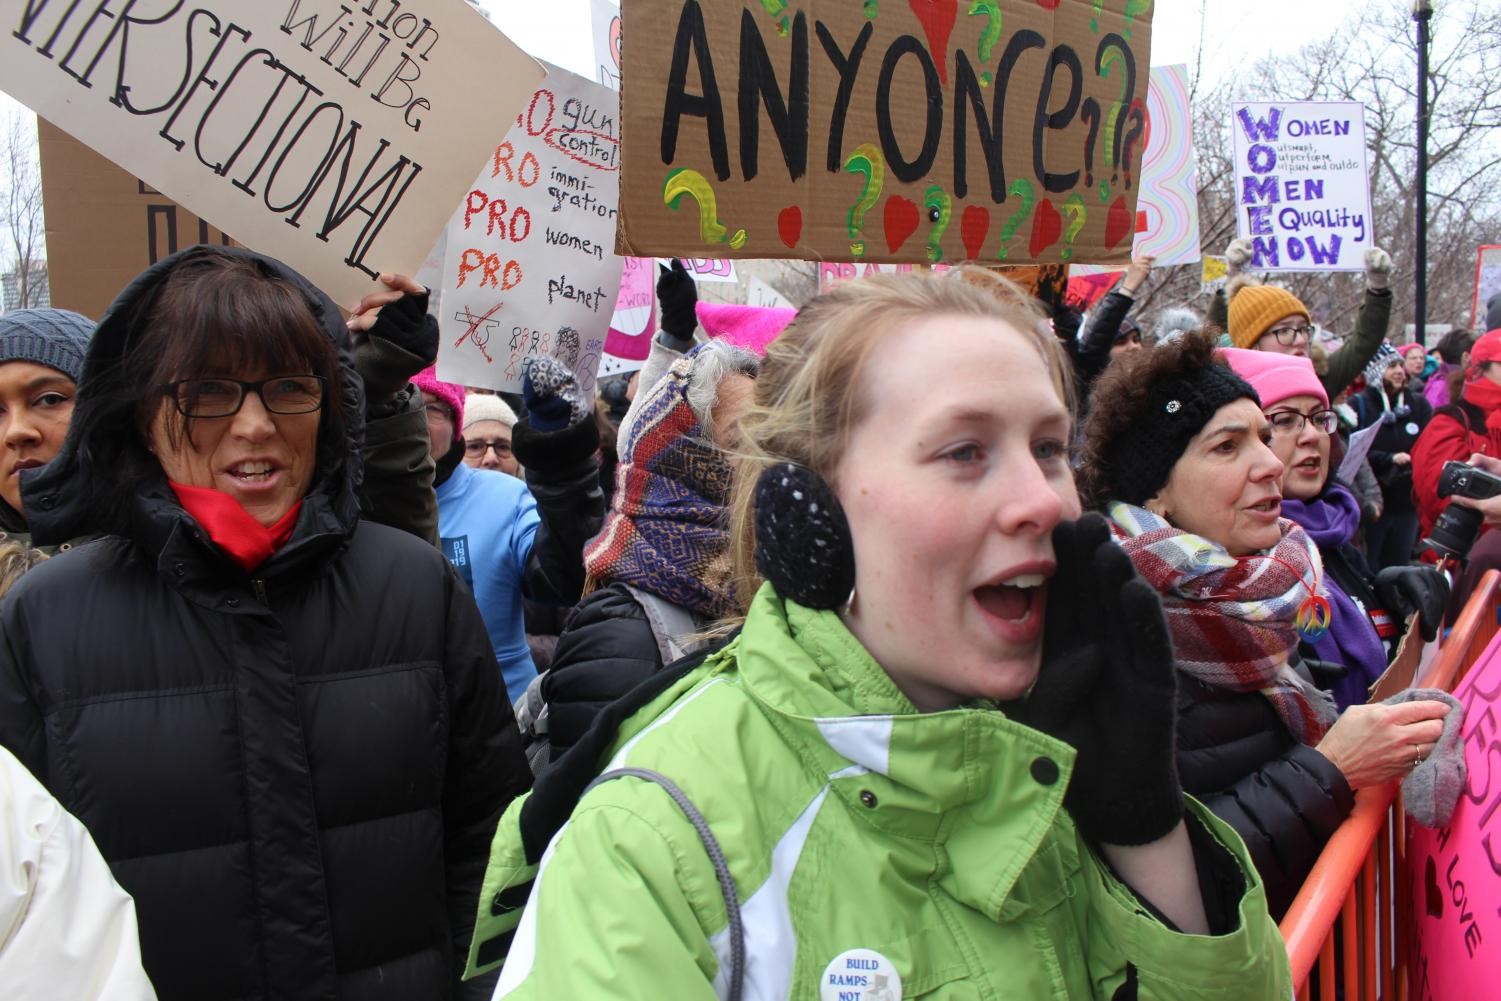 Danielle+Brochu+of+East+Hartford+chants+along+at+the+Women%27s+March+in+Hartford+last+Saturday.+